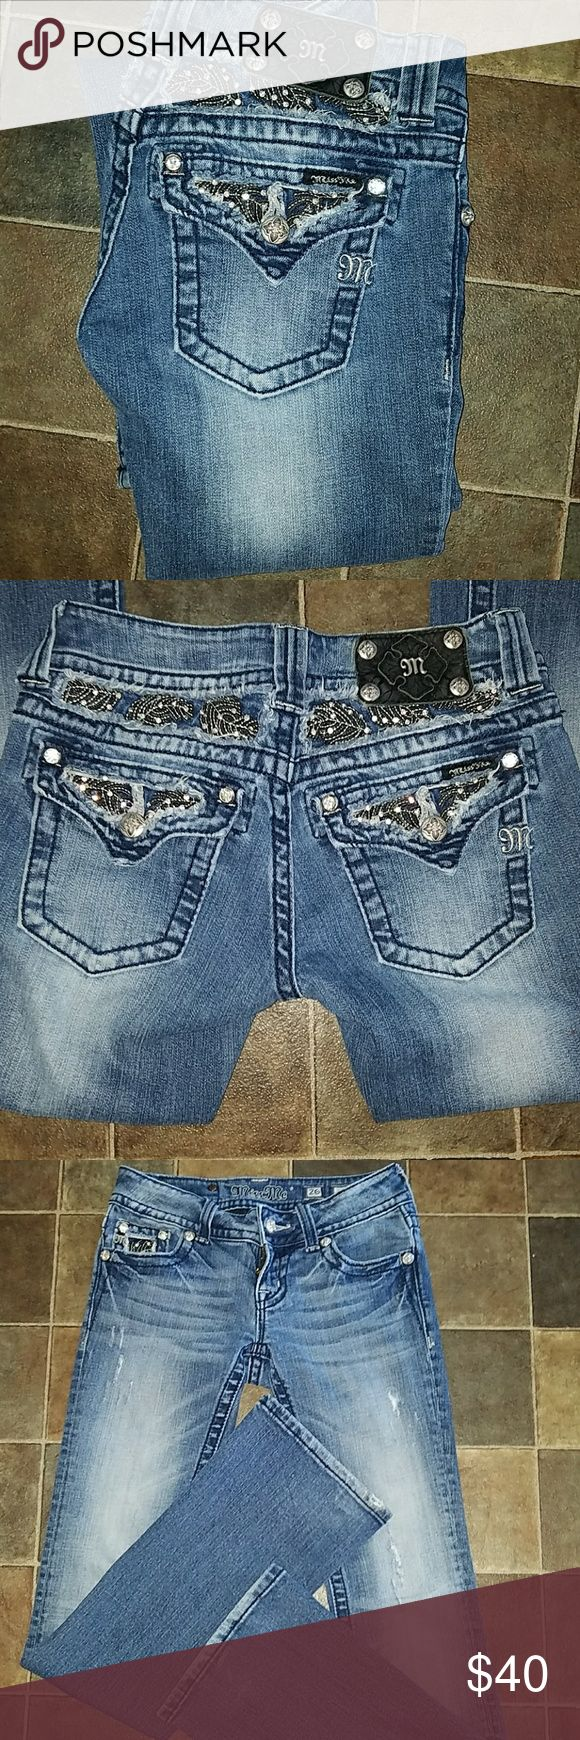 Miss Me Jeans Miss me jeans in great condition size 26 boot cut. Miss Me Jeans Boot Cut